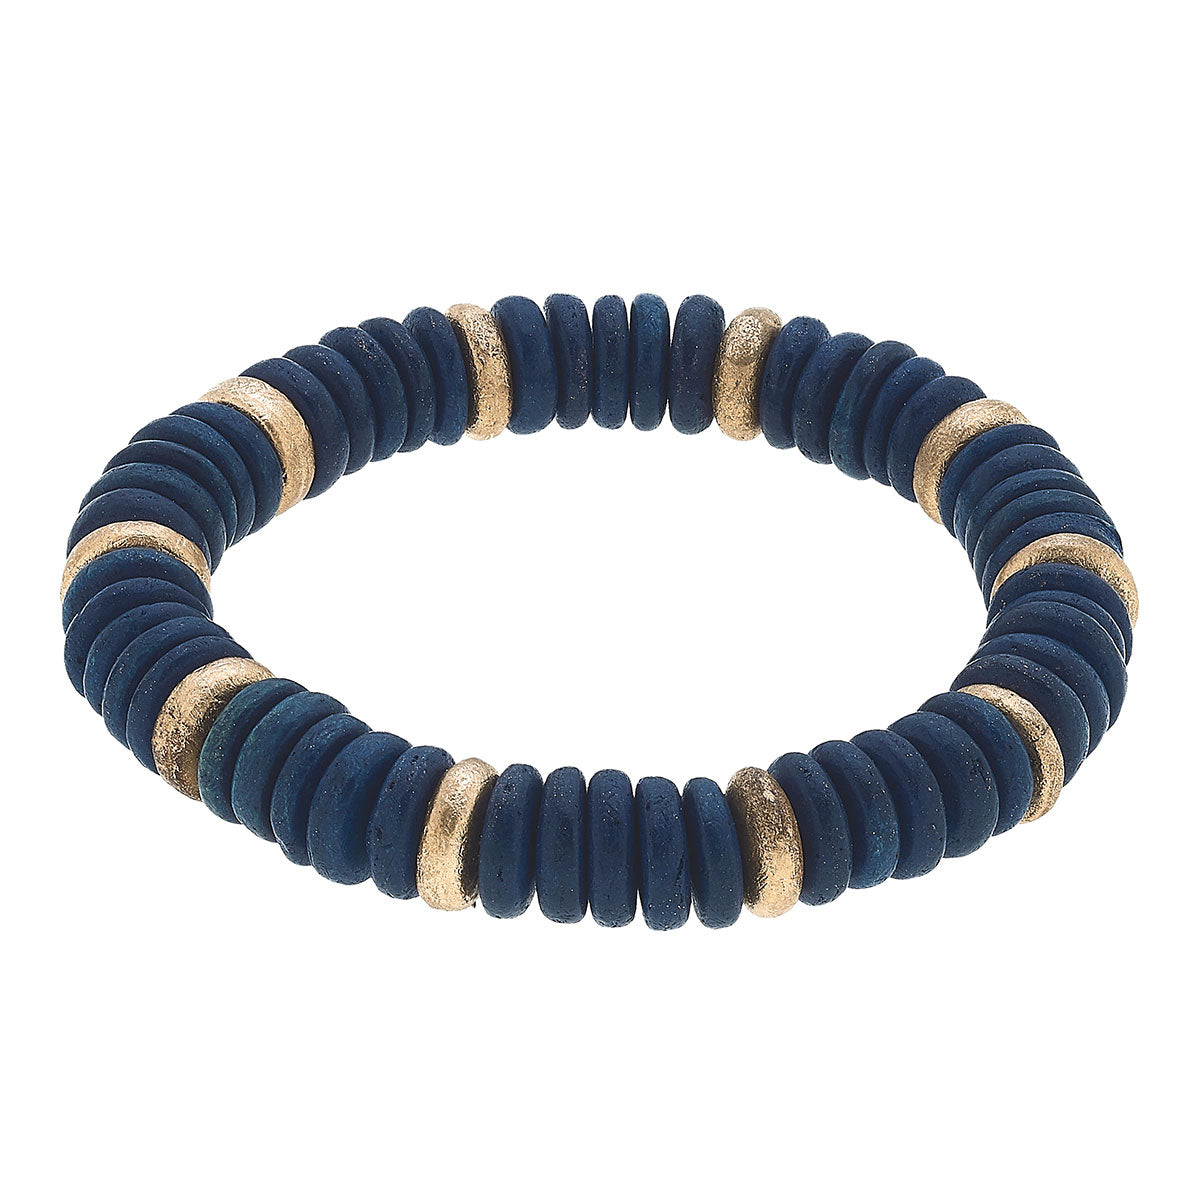 Presley Beaded Wood Stretch Bracelet in Navy